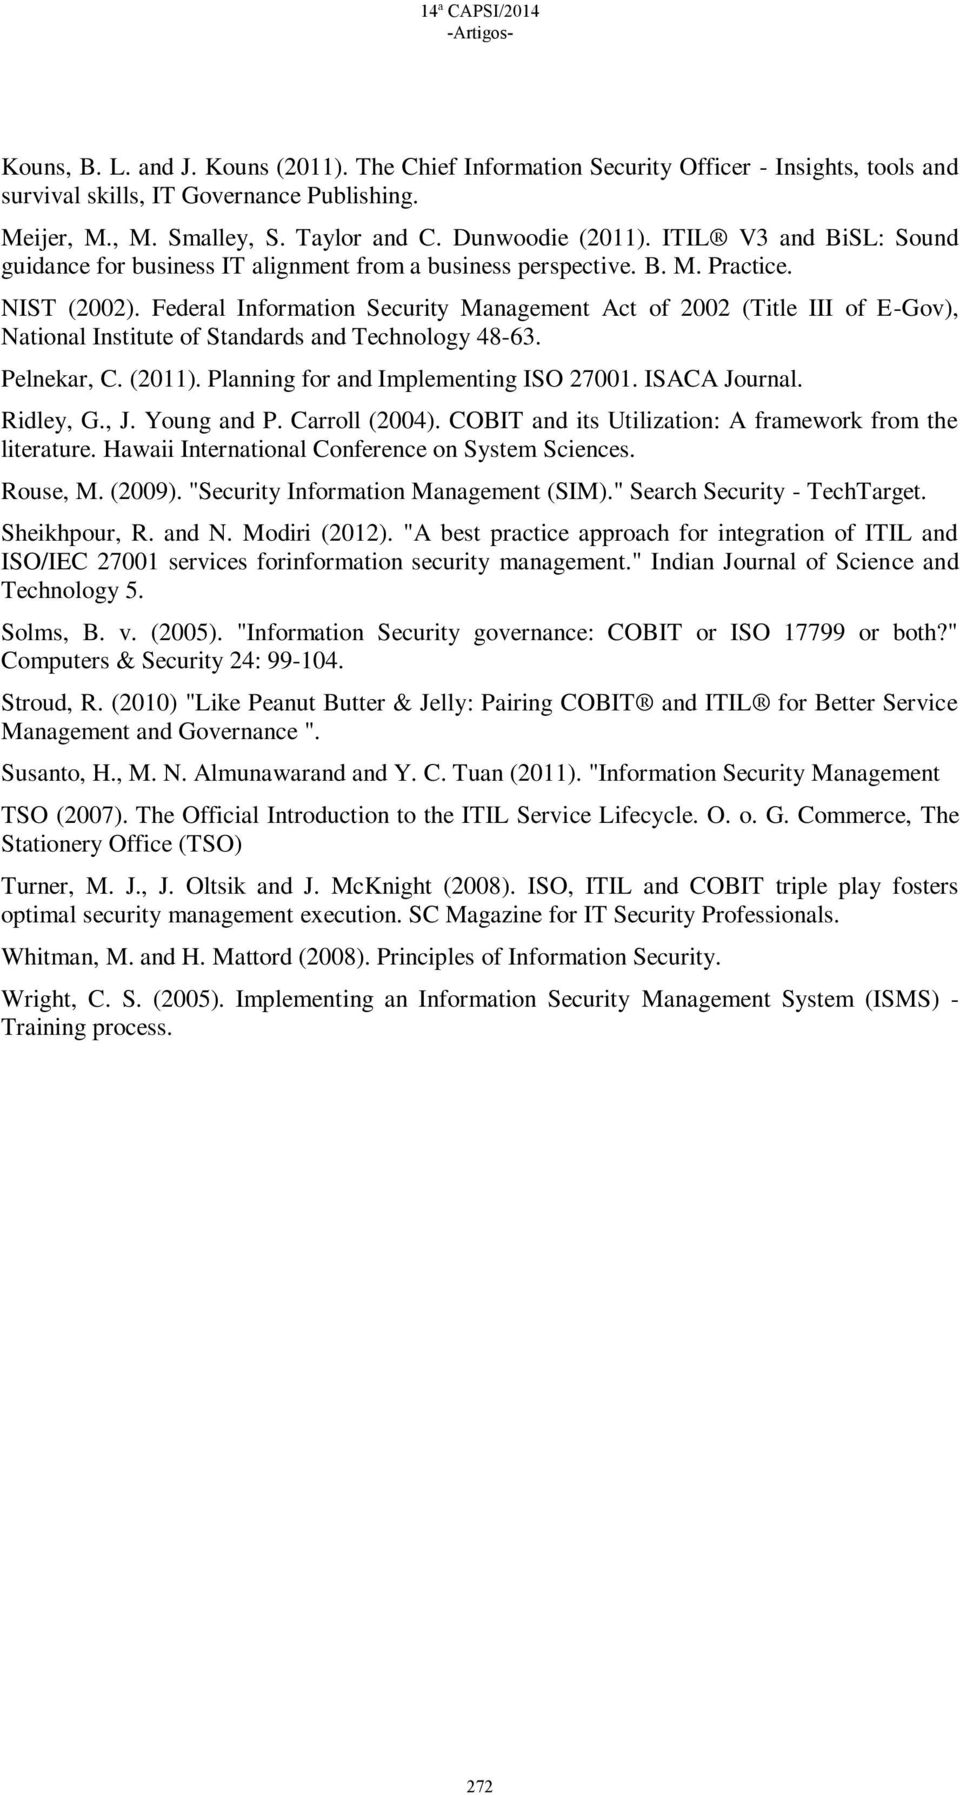 Federal Information Security Management Act of 2002 (Title III of E-Gov), National Institute of Standards and Technology 48-63. Pelnekar, C. (2011). Planning for and Implementing ISO 27001.